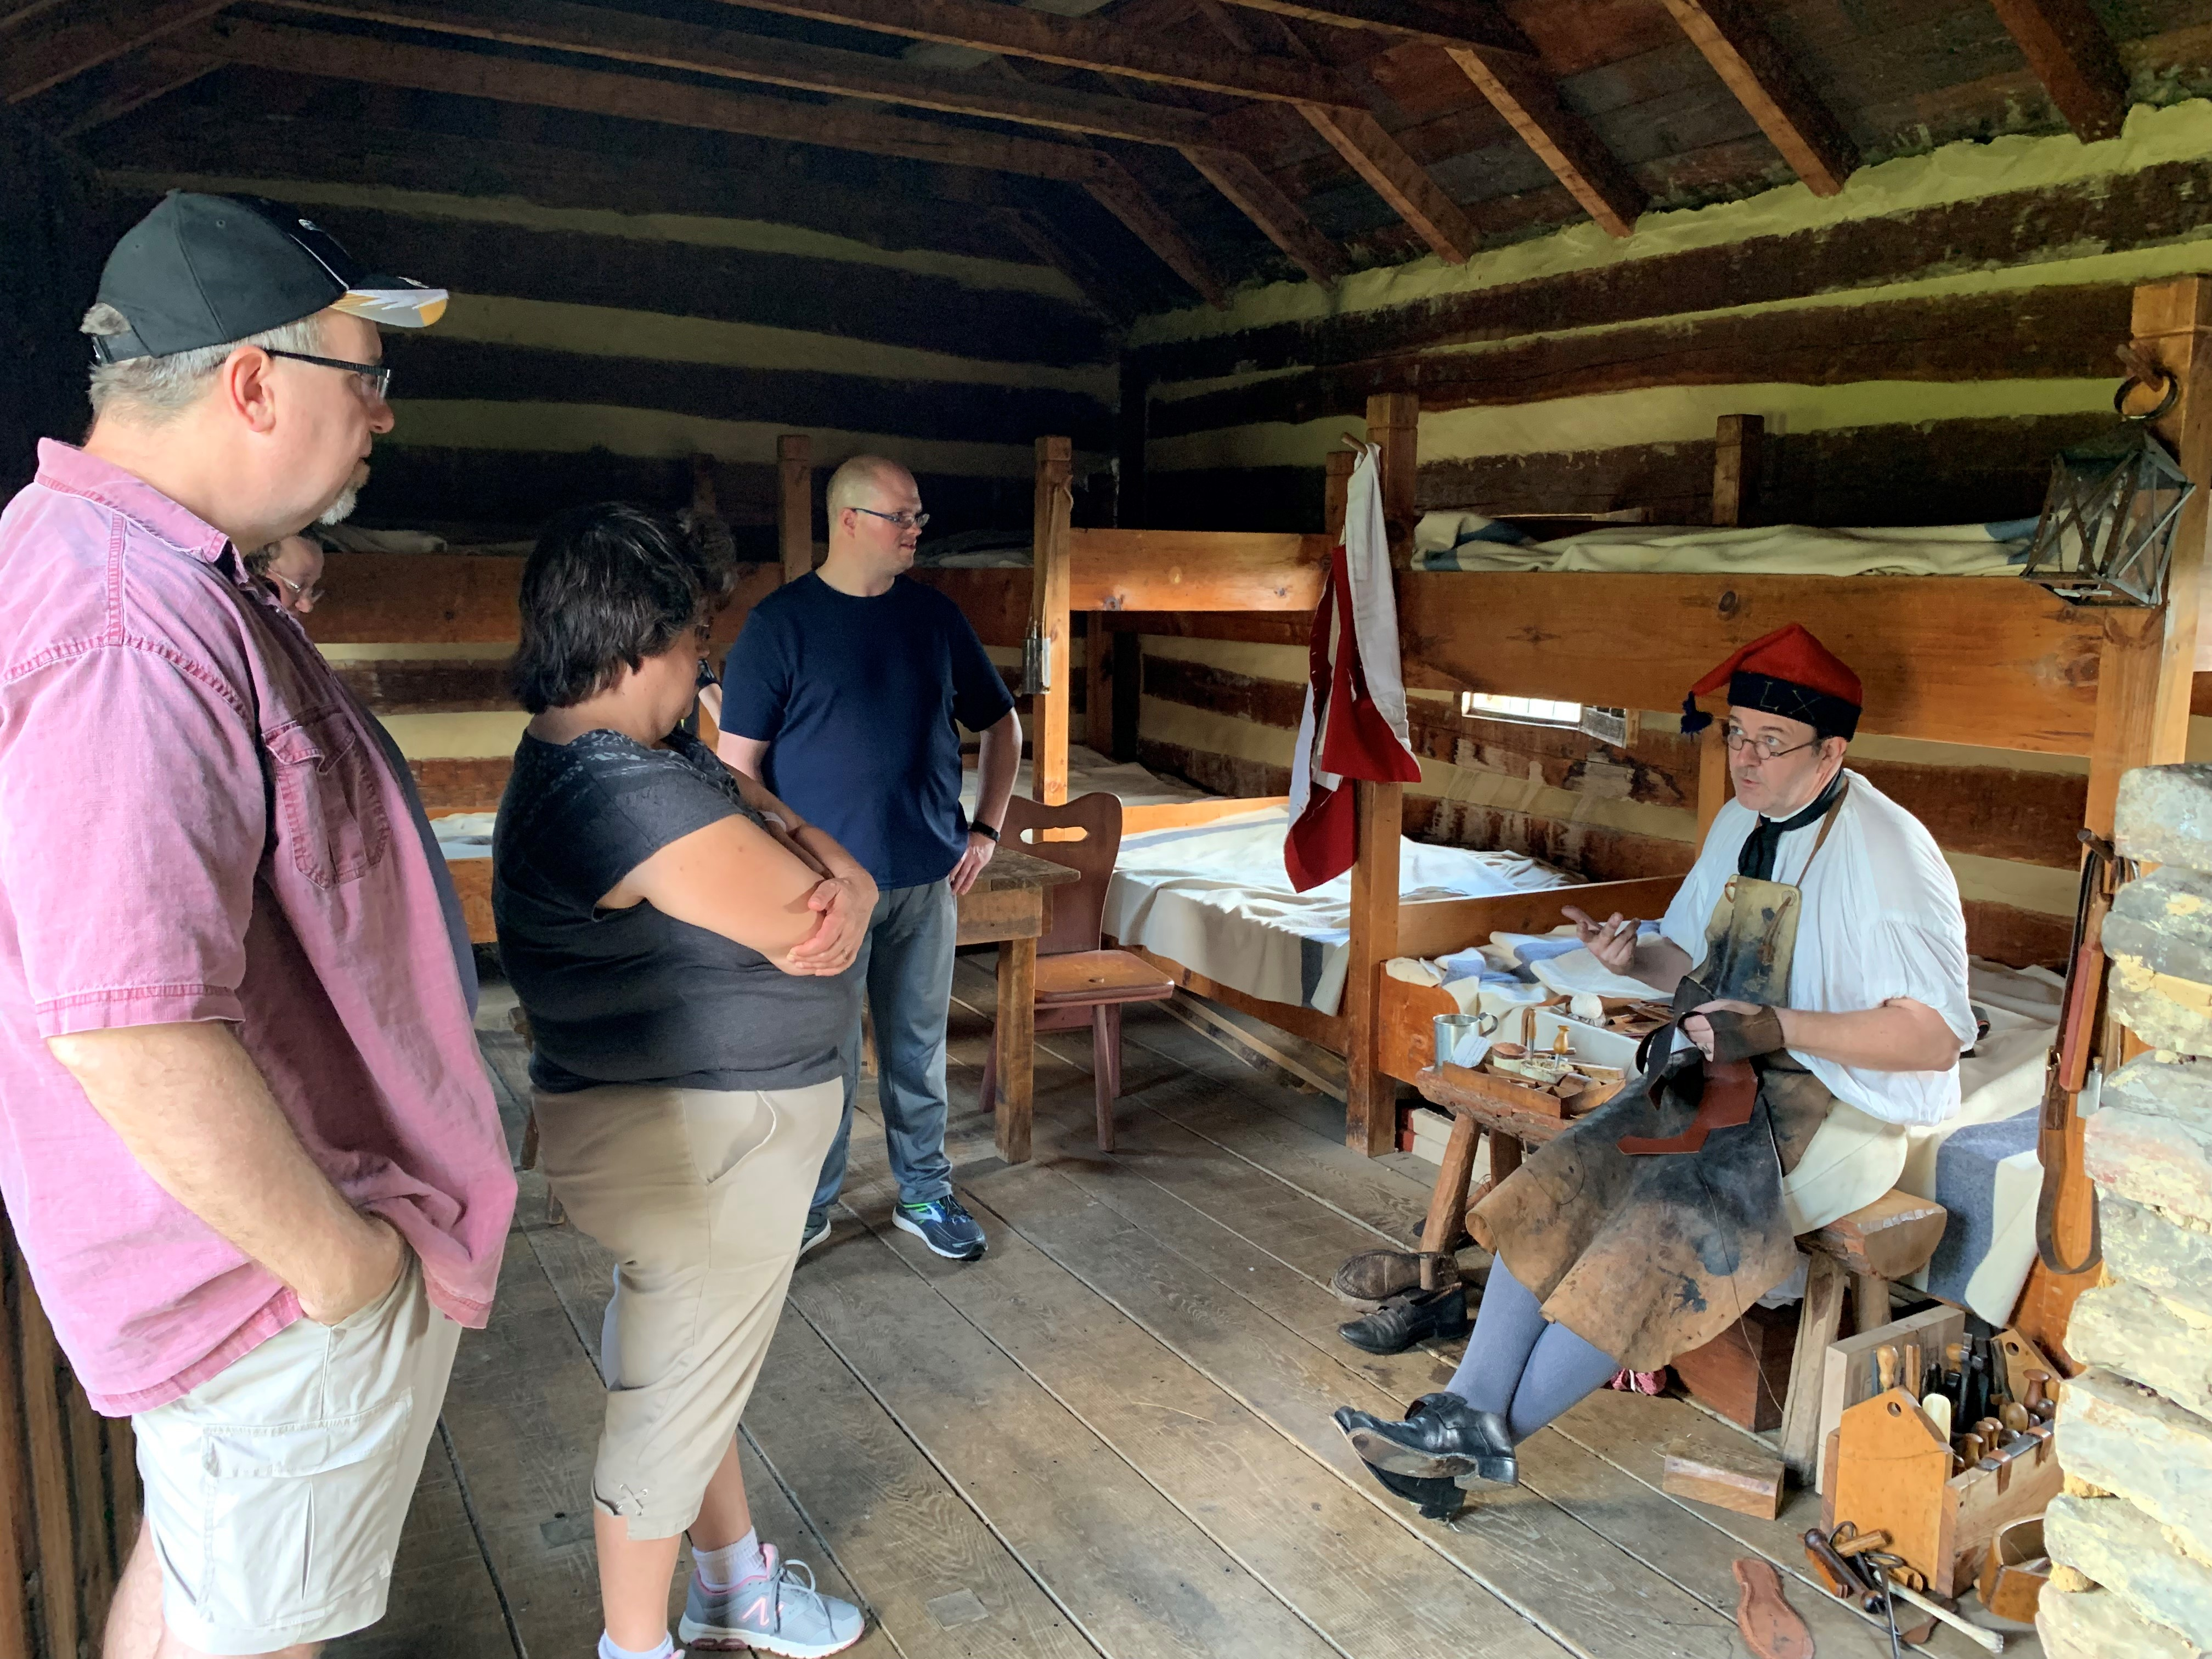 Friendly Fire Incident Program Featuring Former Colonial Williamsburg Shoemaker